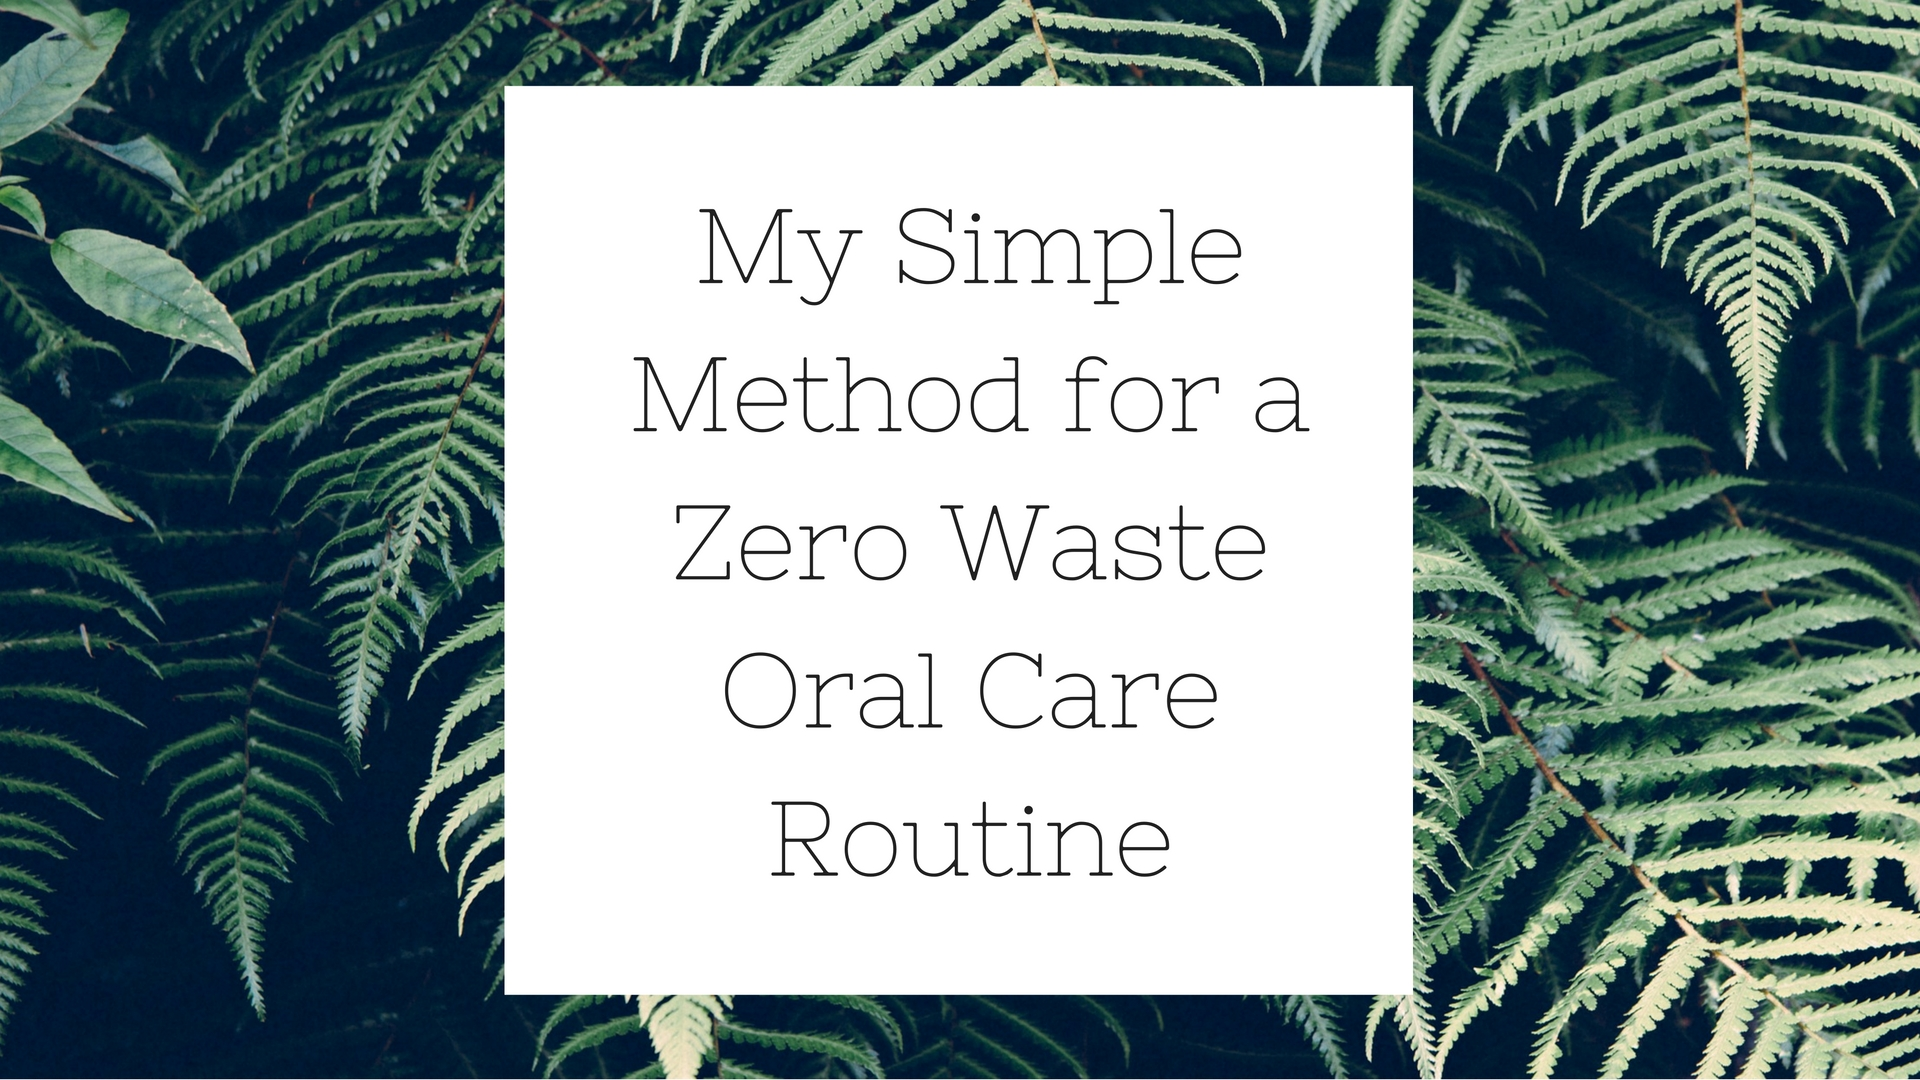 My Simple Method for a Zero Waste Oral Care Routine